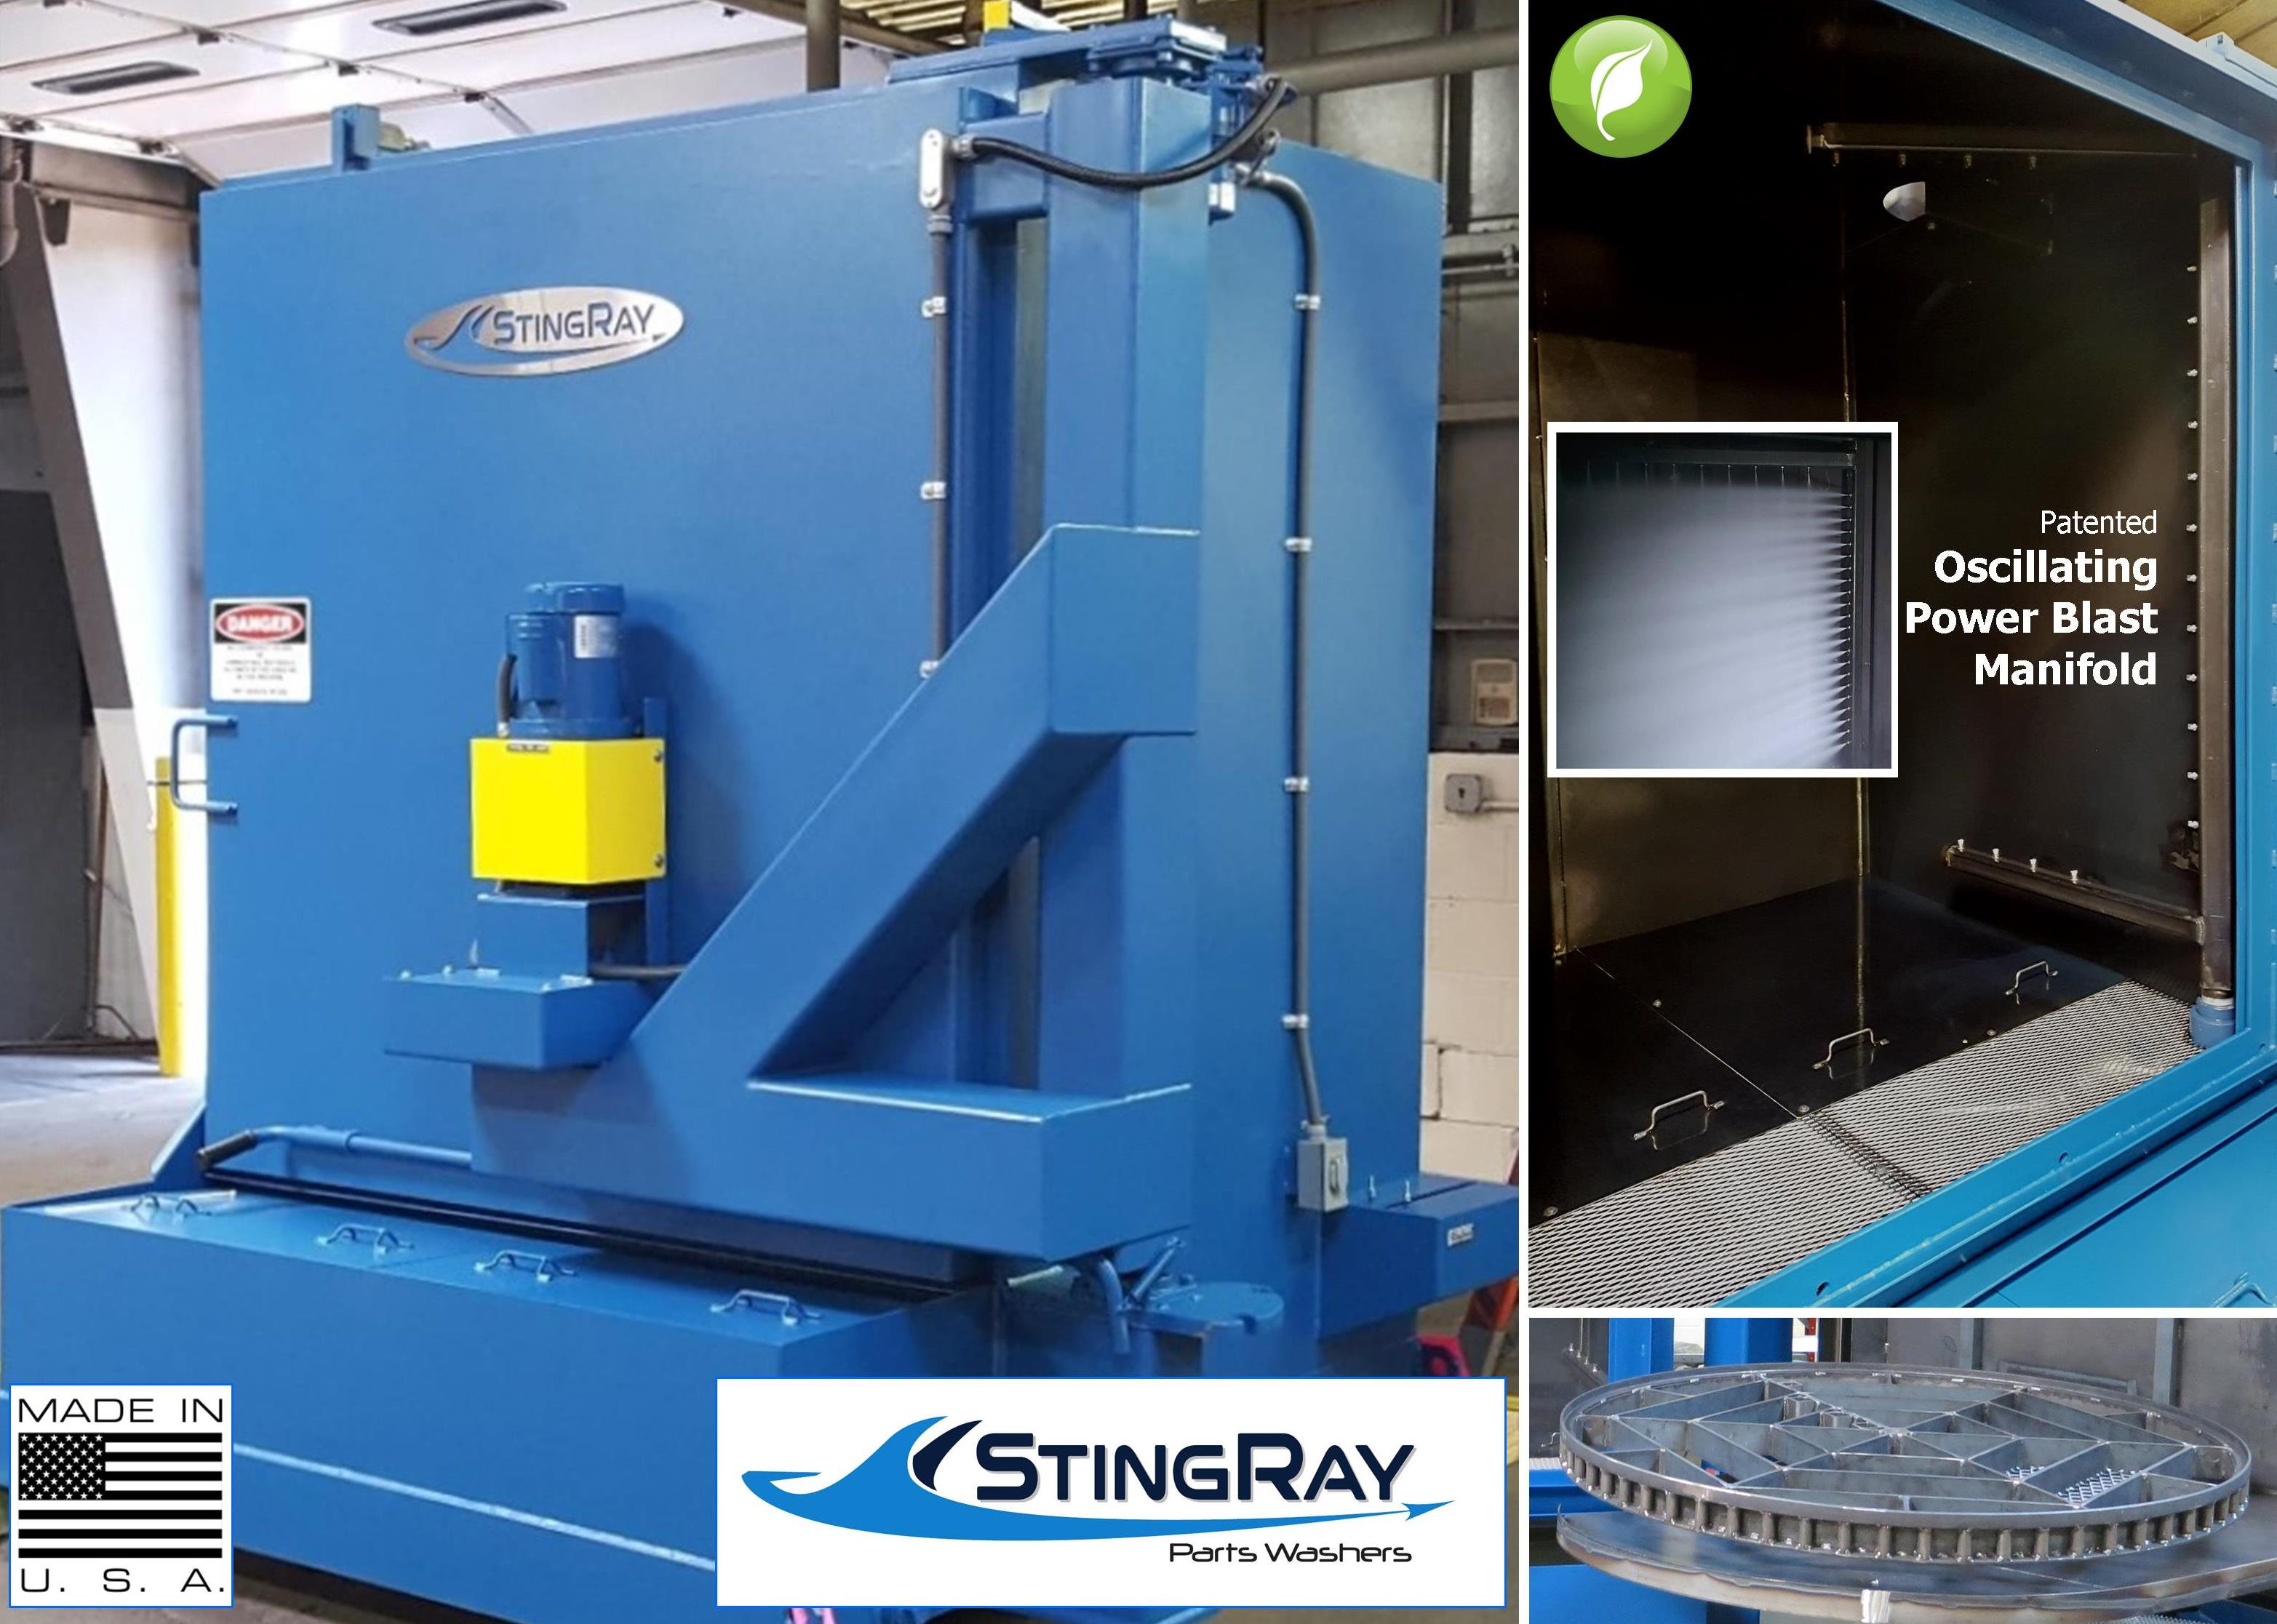 StingRay Industrial Parts Washer for Engine Components Cleaning